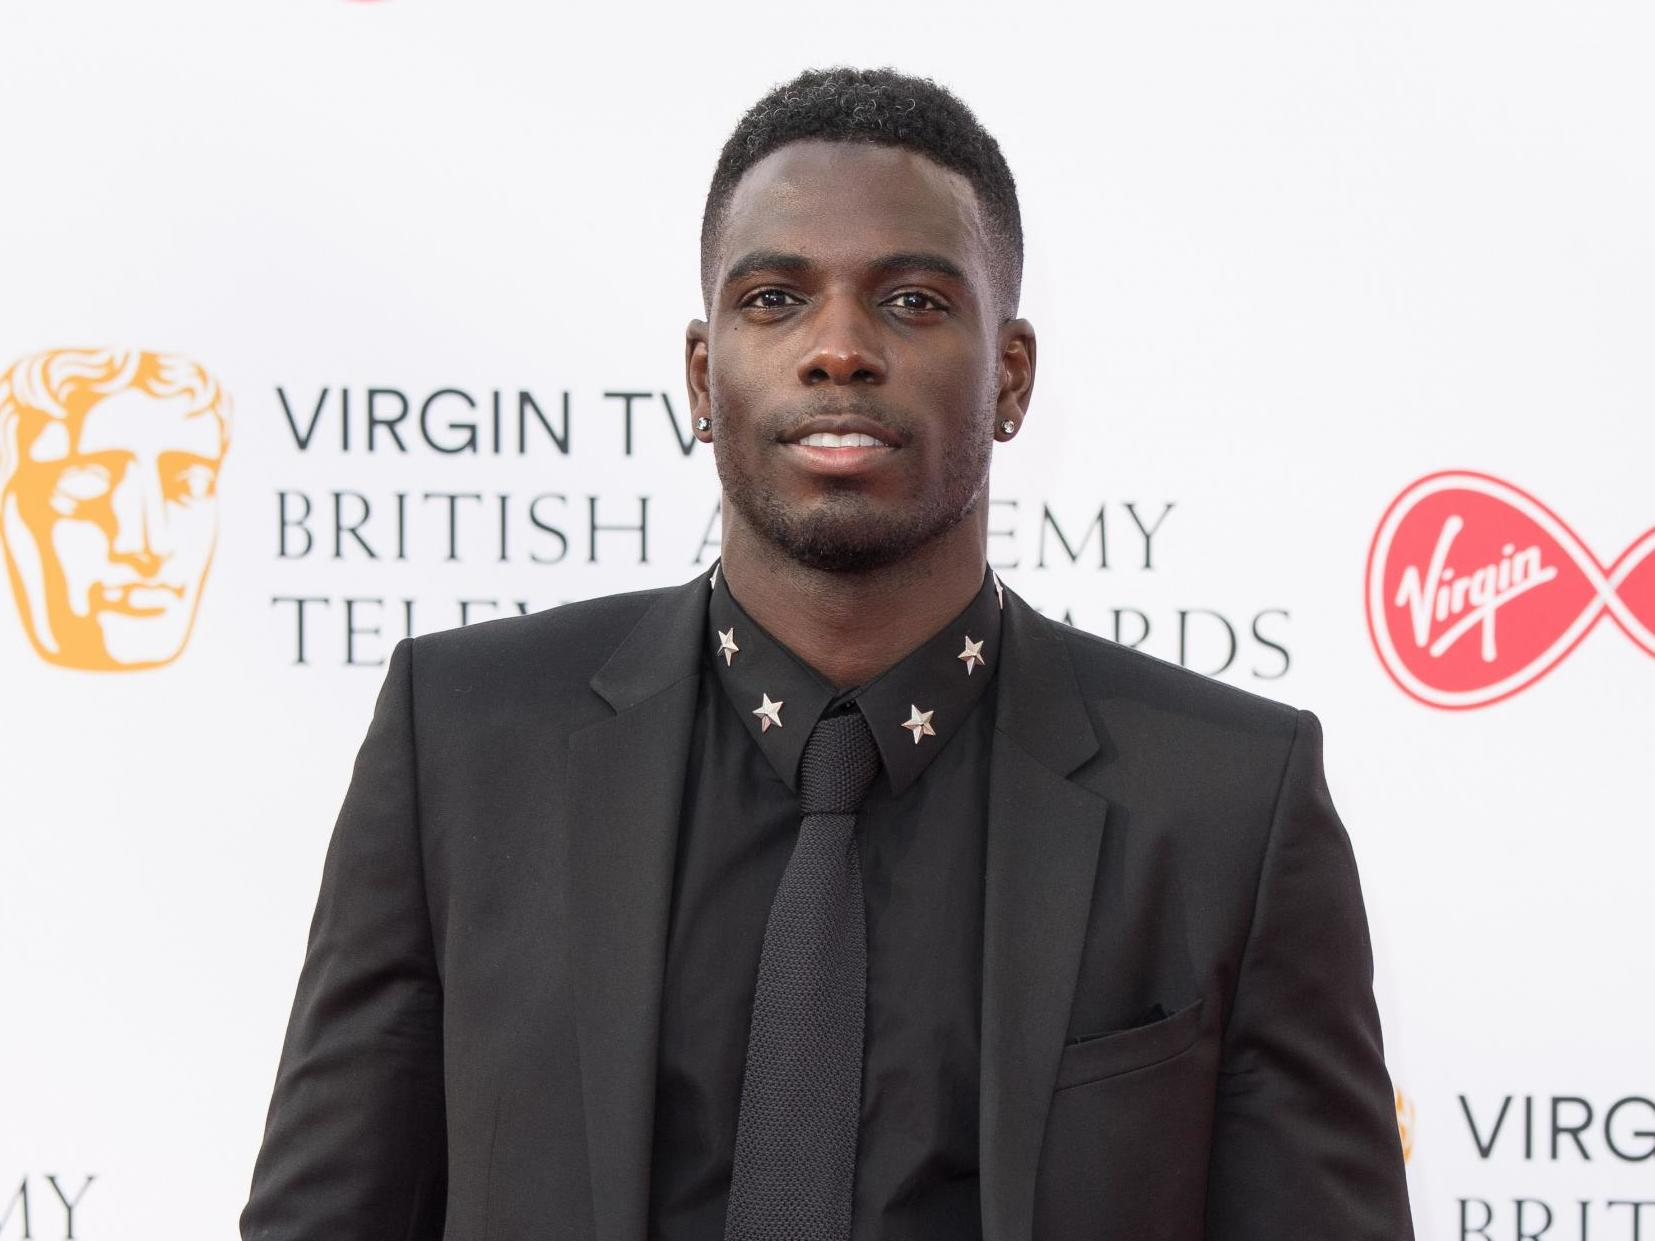 'Love Island' contestant Marcel Somerville reveals he was target of racist abuse on social media